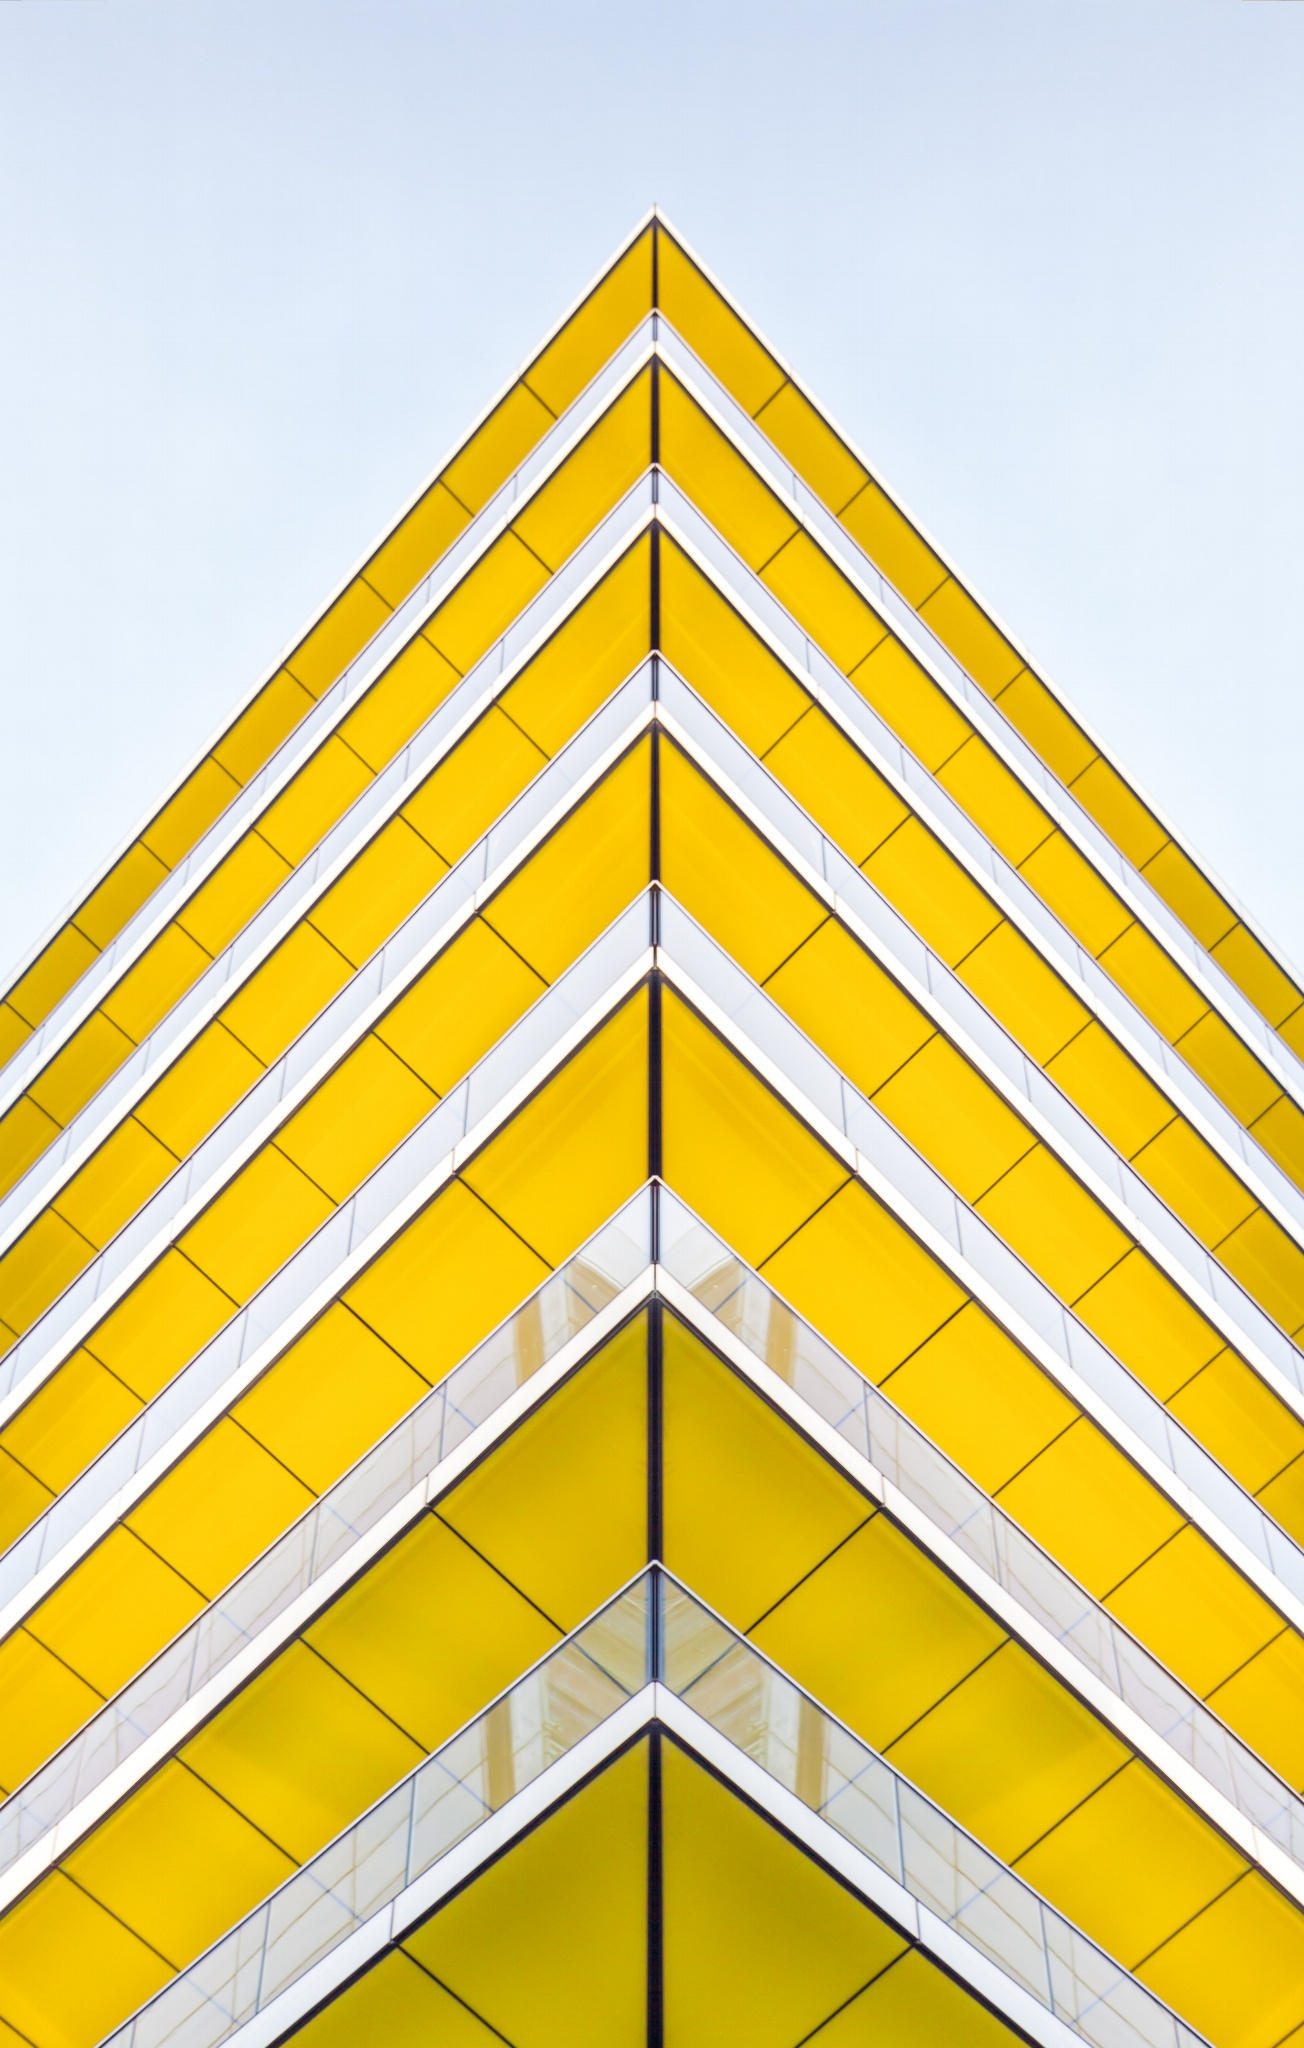 London architecture by David Higgins